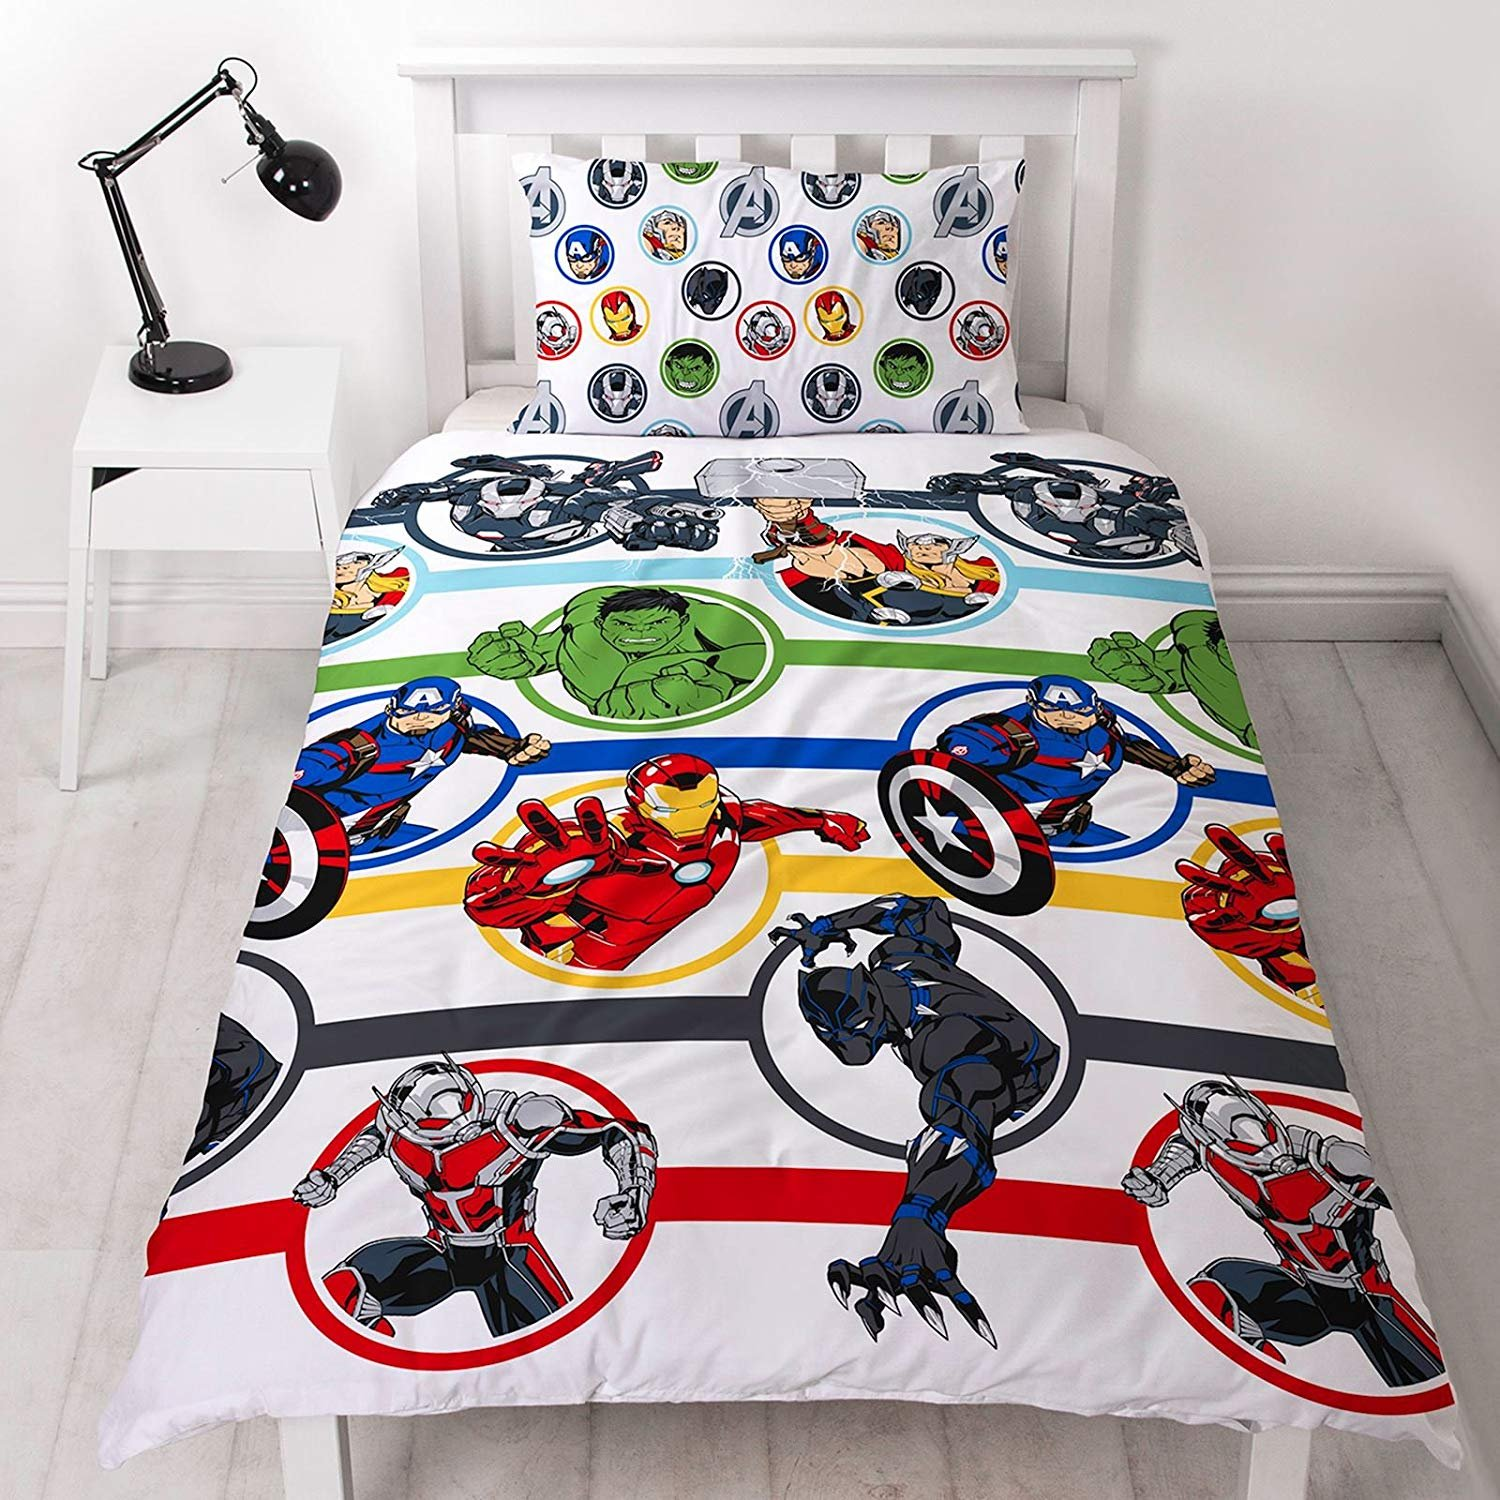 Marvel Avengers Strong UK Single/US Twin Unfilled Duvet Cover and Pillowcase Set